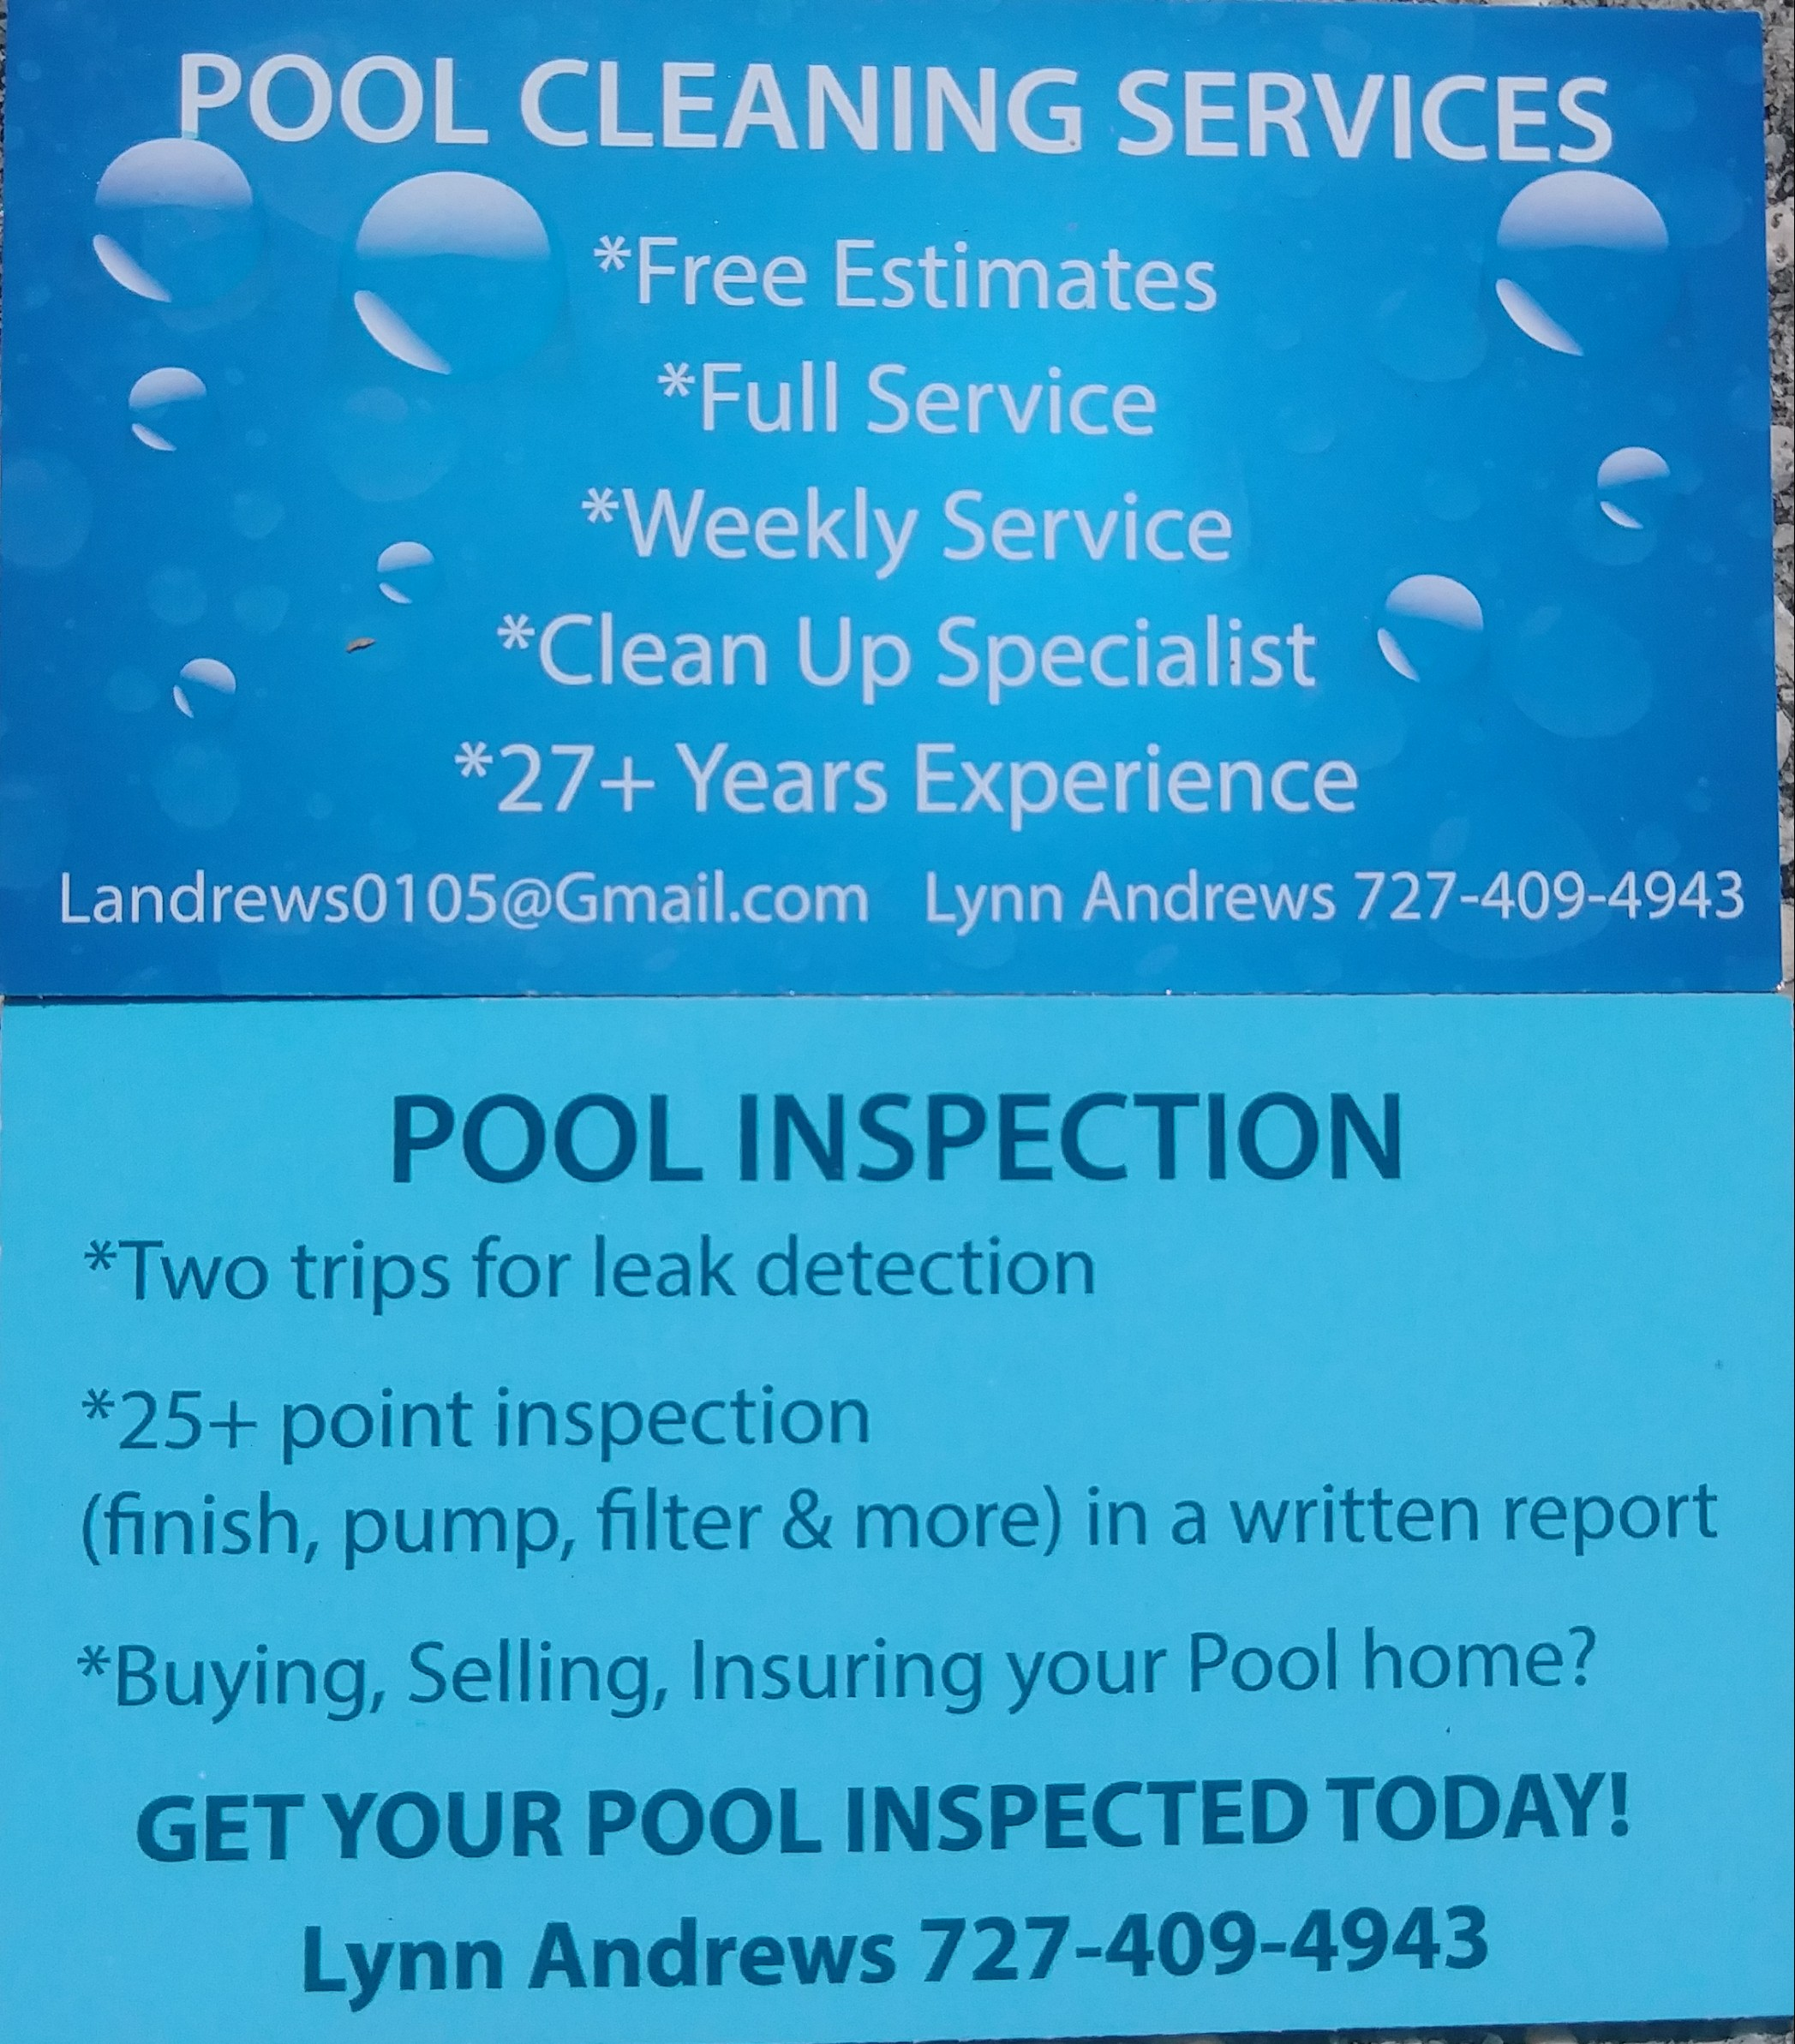 Business card of Pool Cleaning & Inspection Services